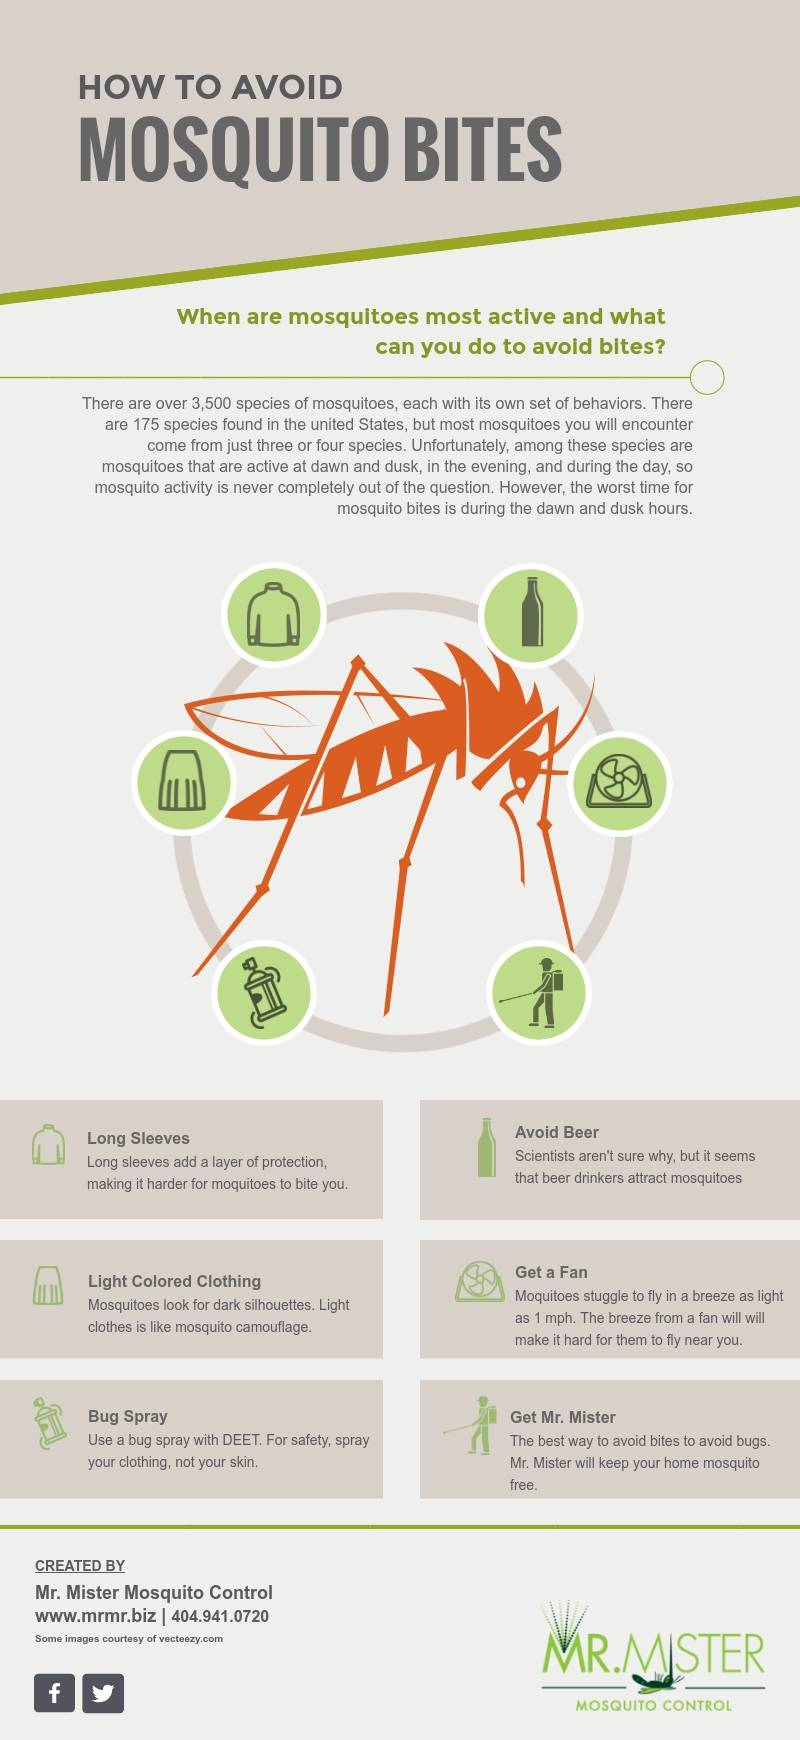 When Are Mosquitoes Most Active [infographic]